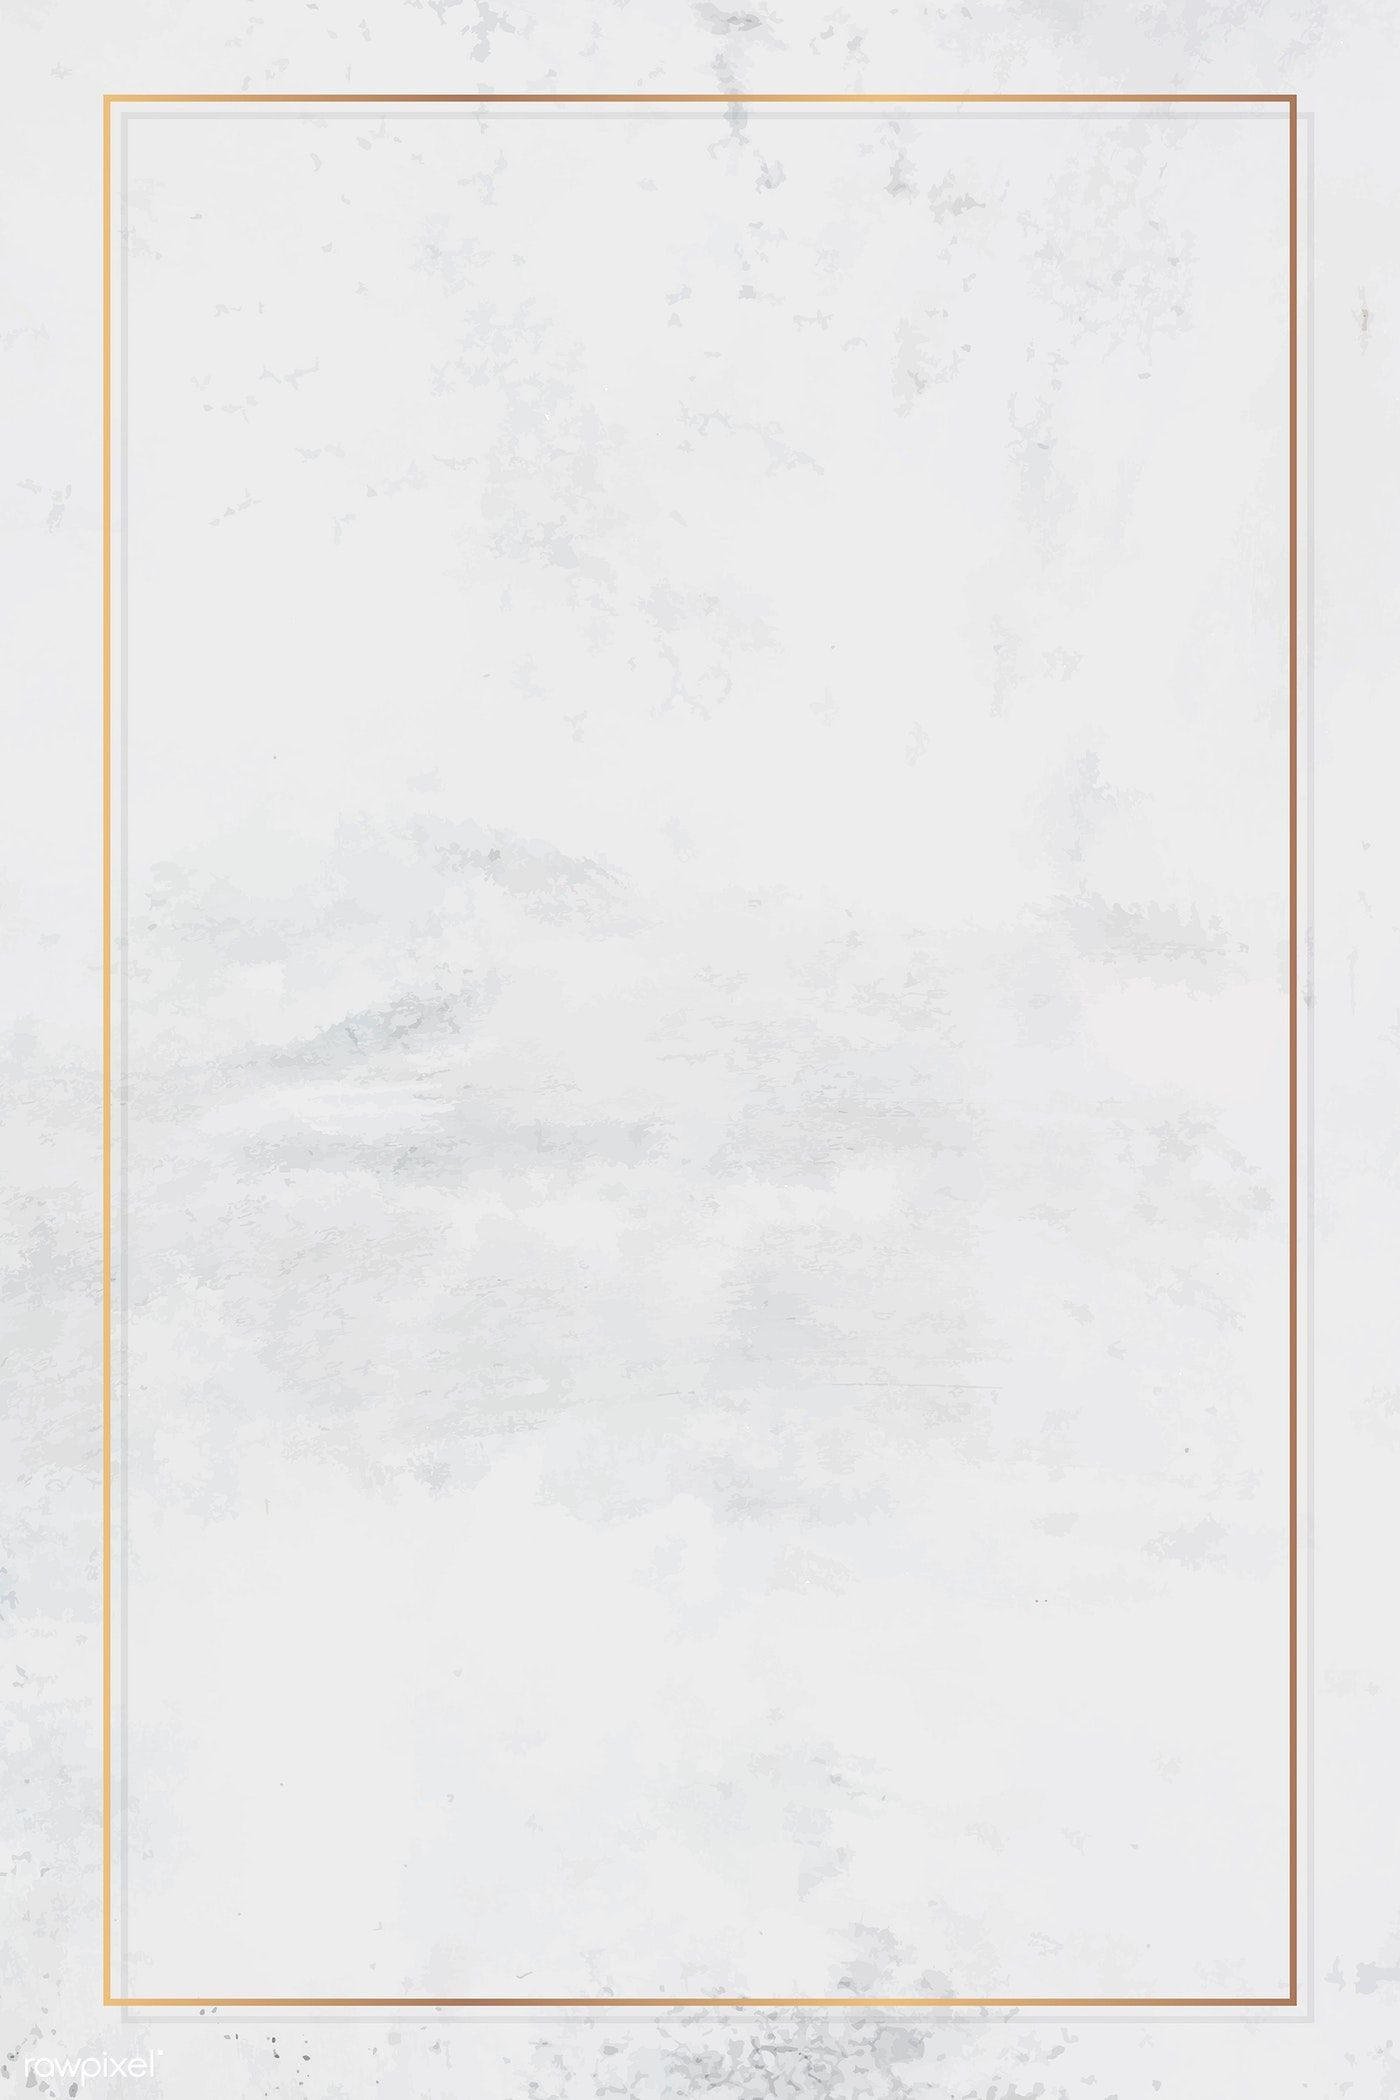 Download premium vector of Rectangle gold frame on white marble background vector by Ning about background, texture, frame, banner, and gold frames 1221652